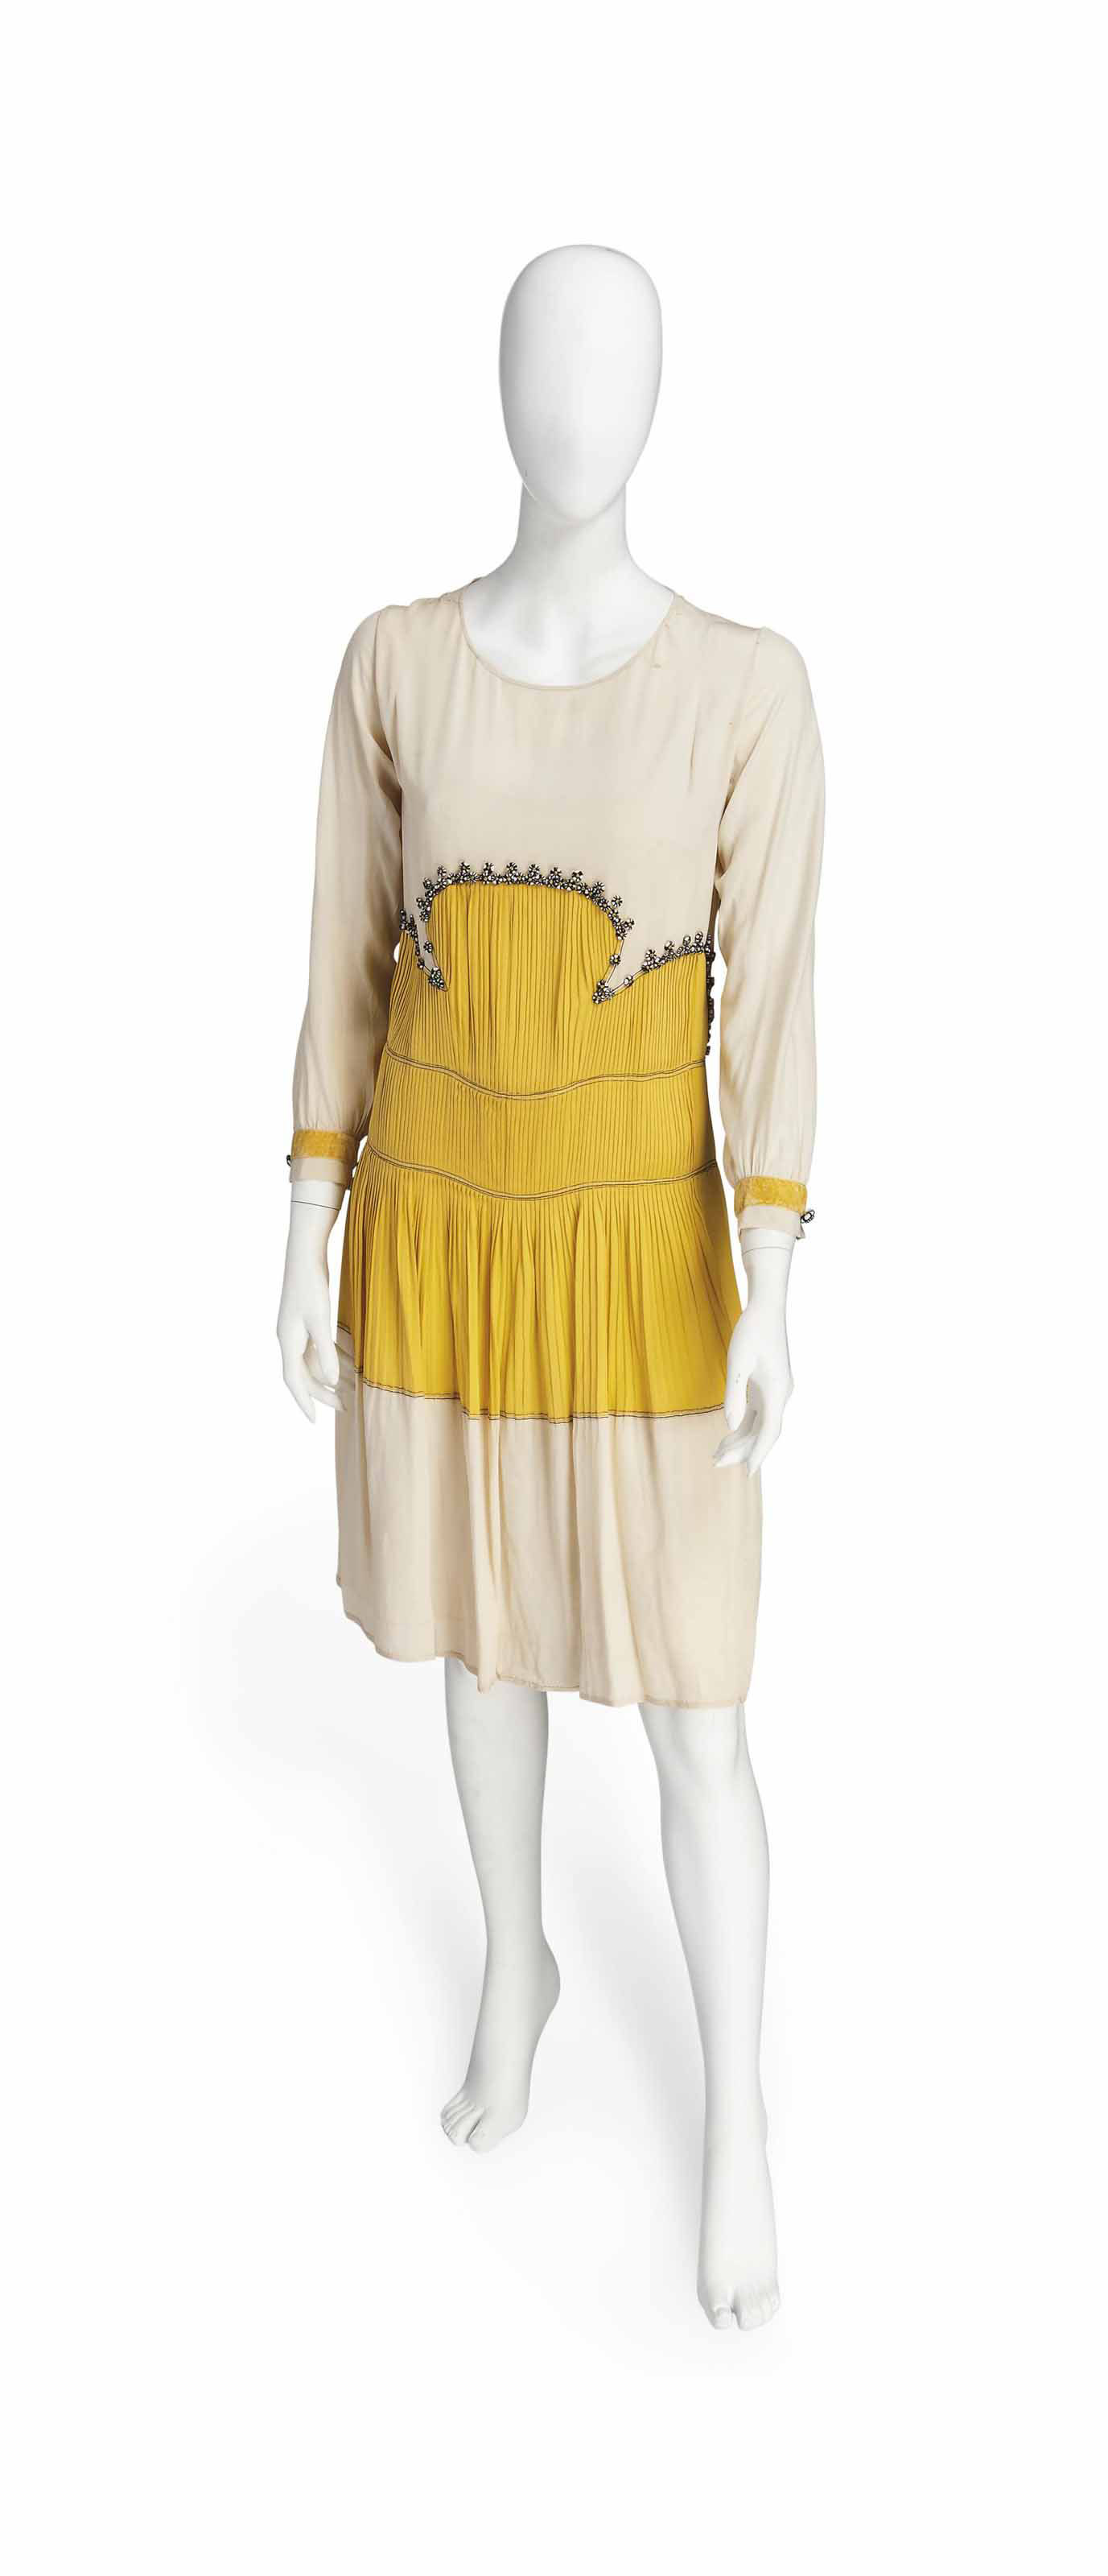 COUCOU, A JEANNE LANVIN DAY DRESS